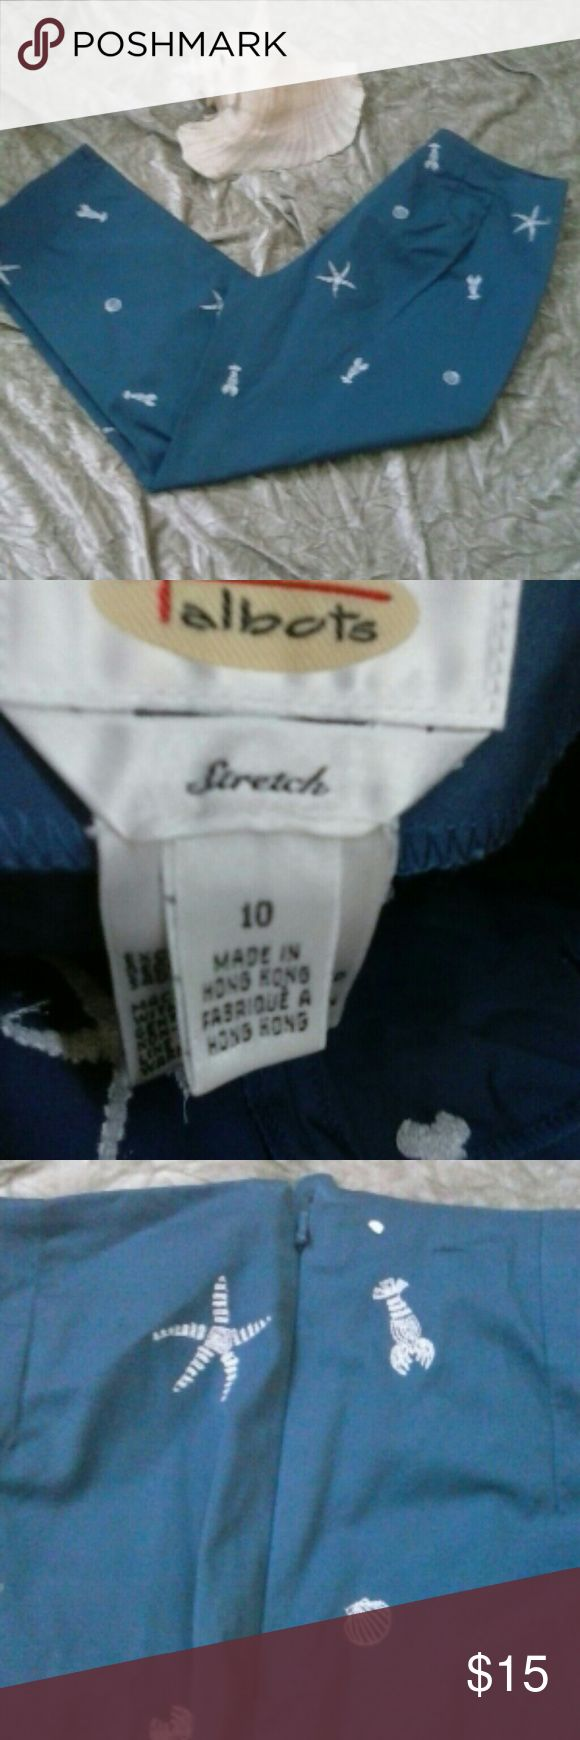 """NWOT Talbots Capri Pants Beach  Nautical Size 10 NEW without tags Talbot Capri Pants instead  24.5"""". Stretch made of 97% cotton, 3% Spandex. Machine Wash, Color a dusty blue pic color is accurate. Side zippered hidden closure, pic 3. Has white embroidered sea life, star fish, lobster and clams! Super cute!! Talbots Pants Capris"""